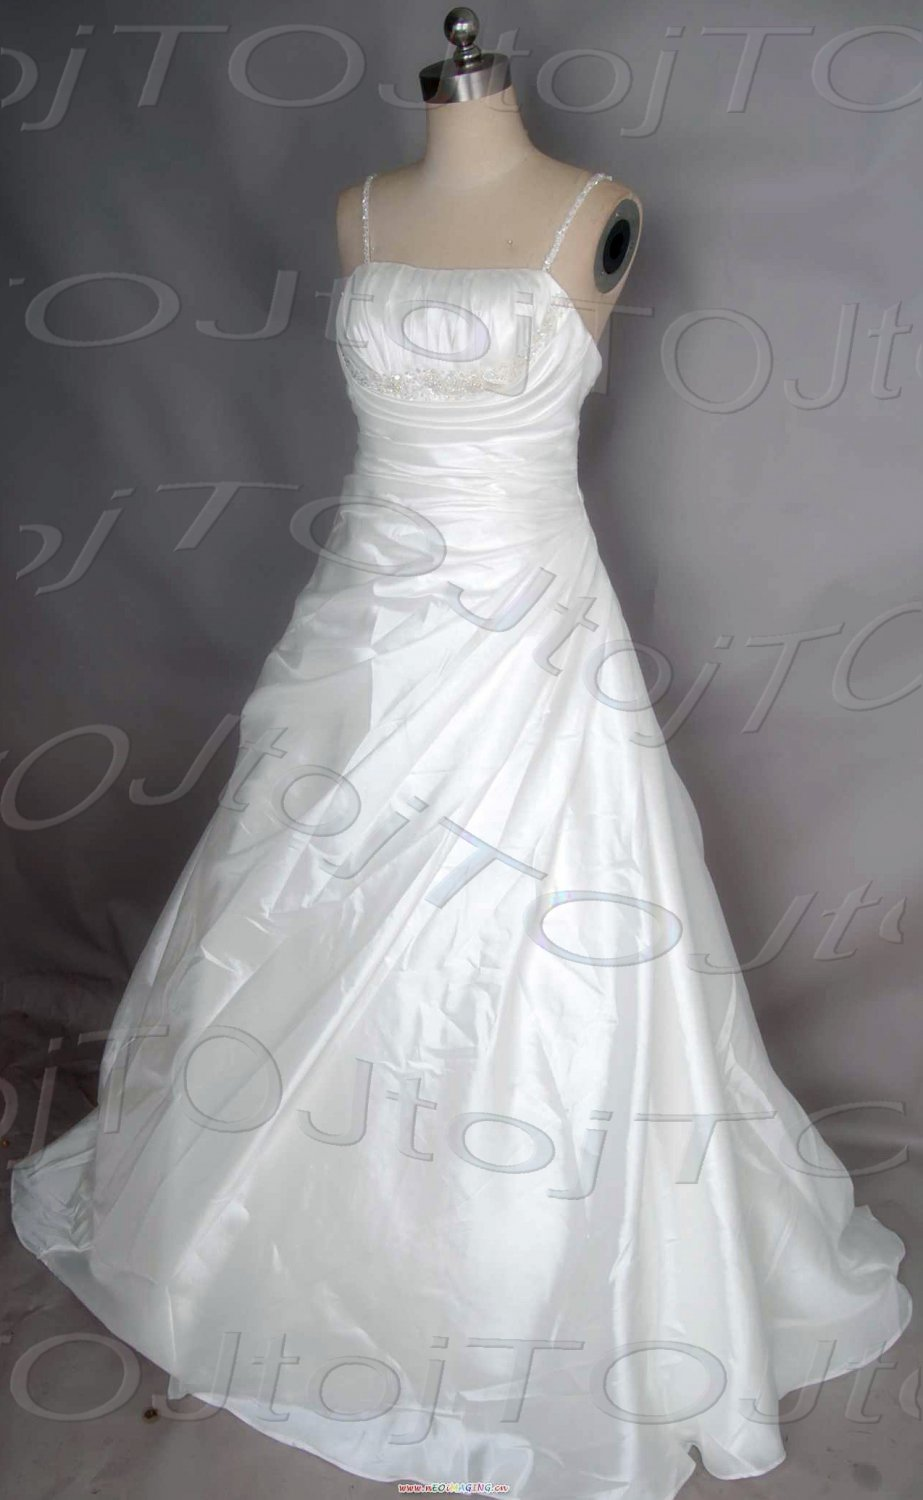 A-line wedding gown-DWG0937